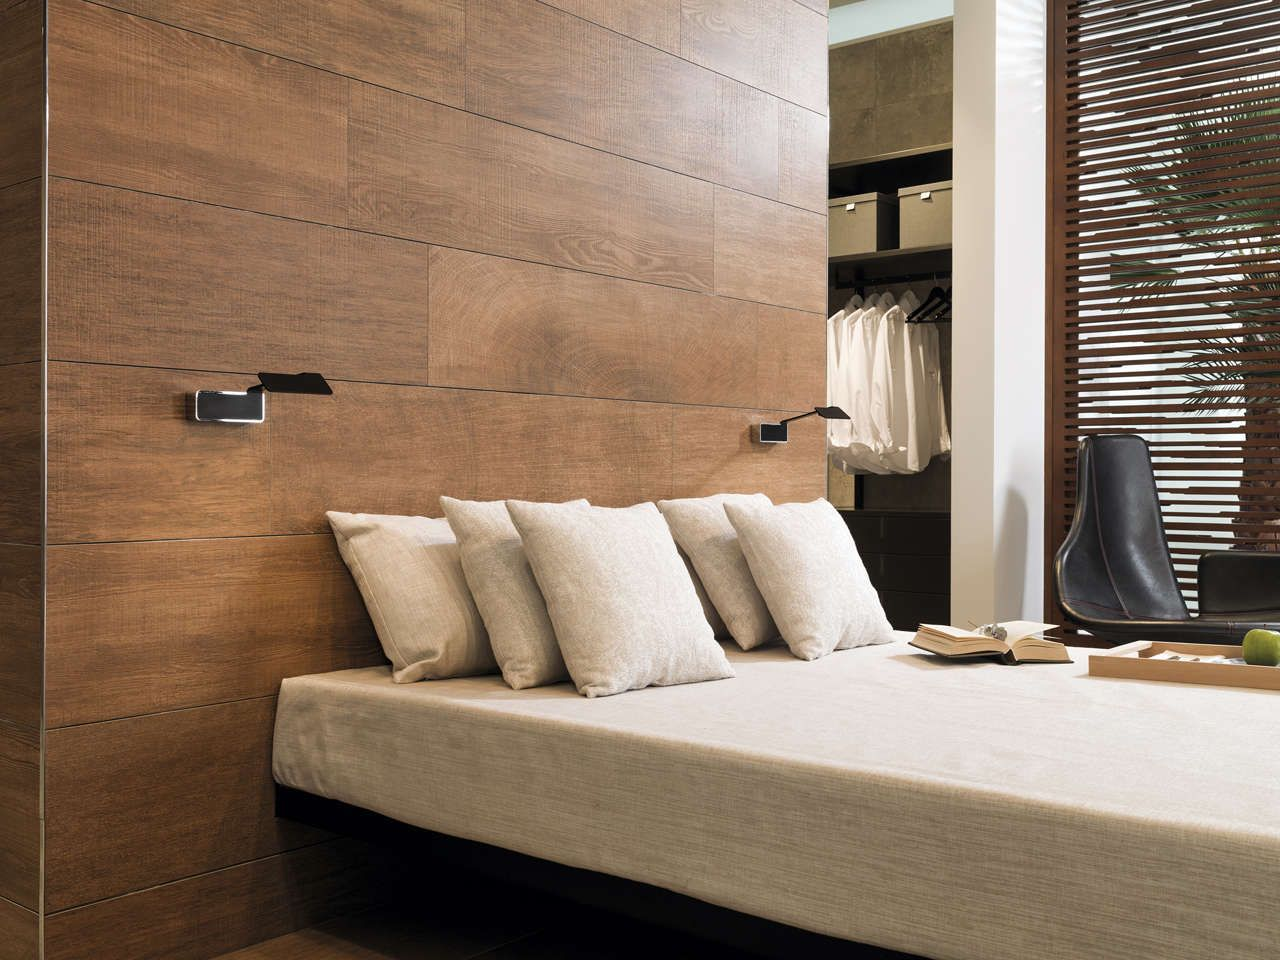 Par Ker Wall Tiles Houston Natural 294x120 Cm Concepts